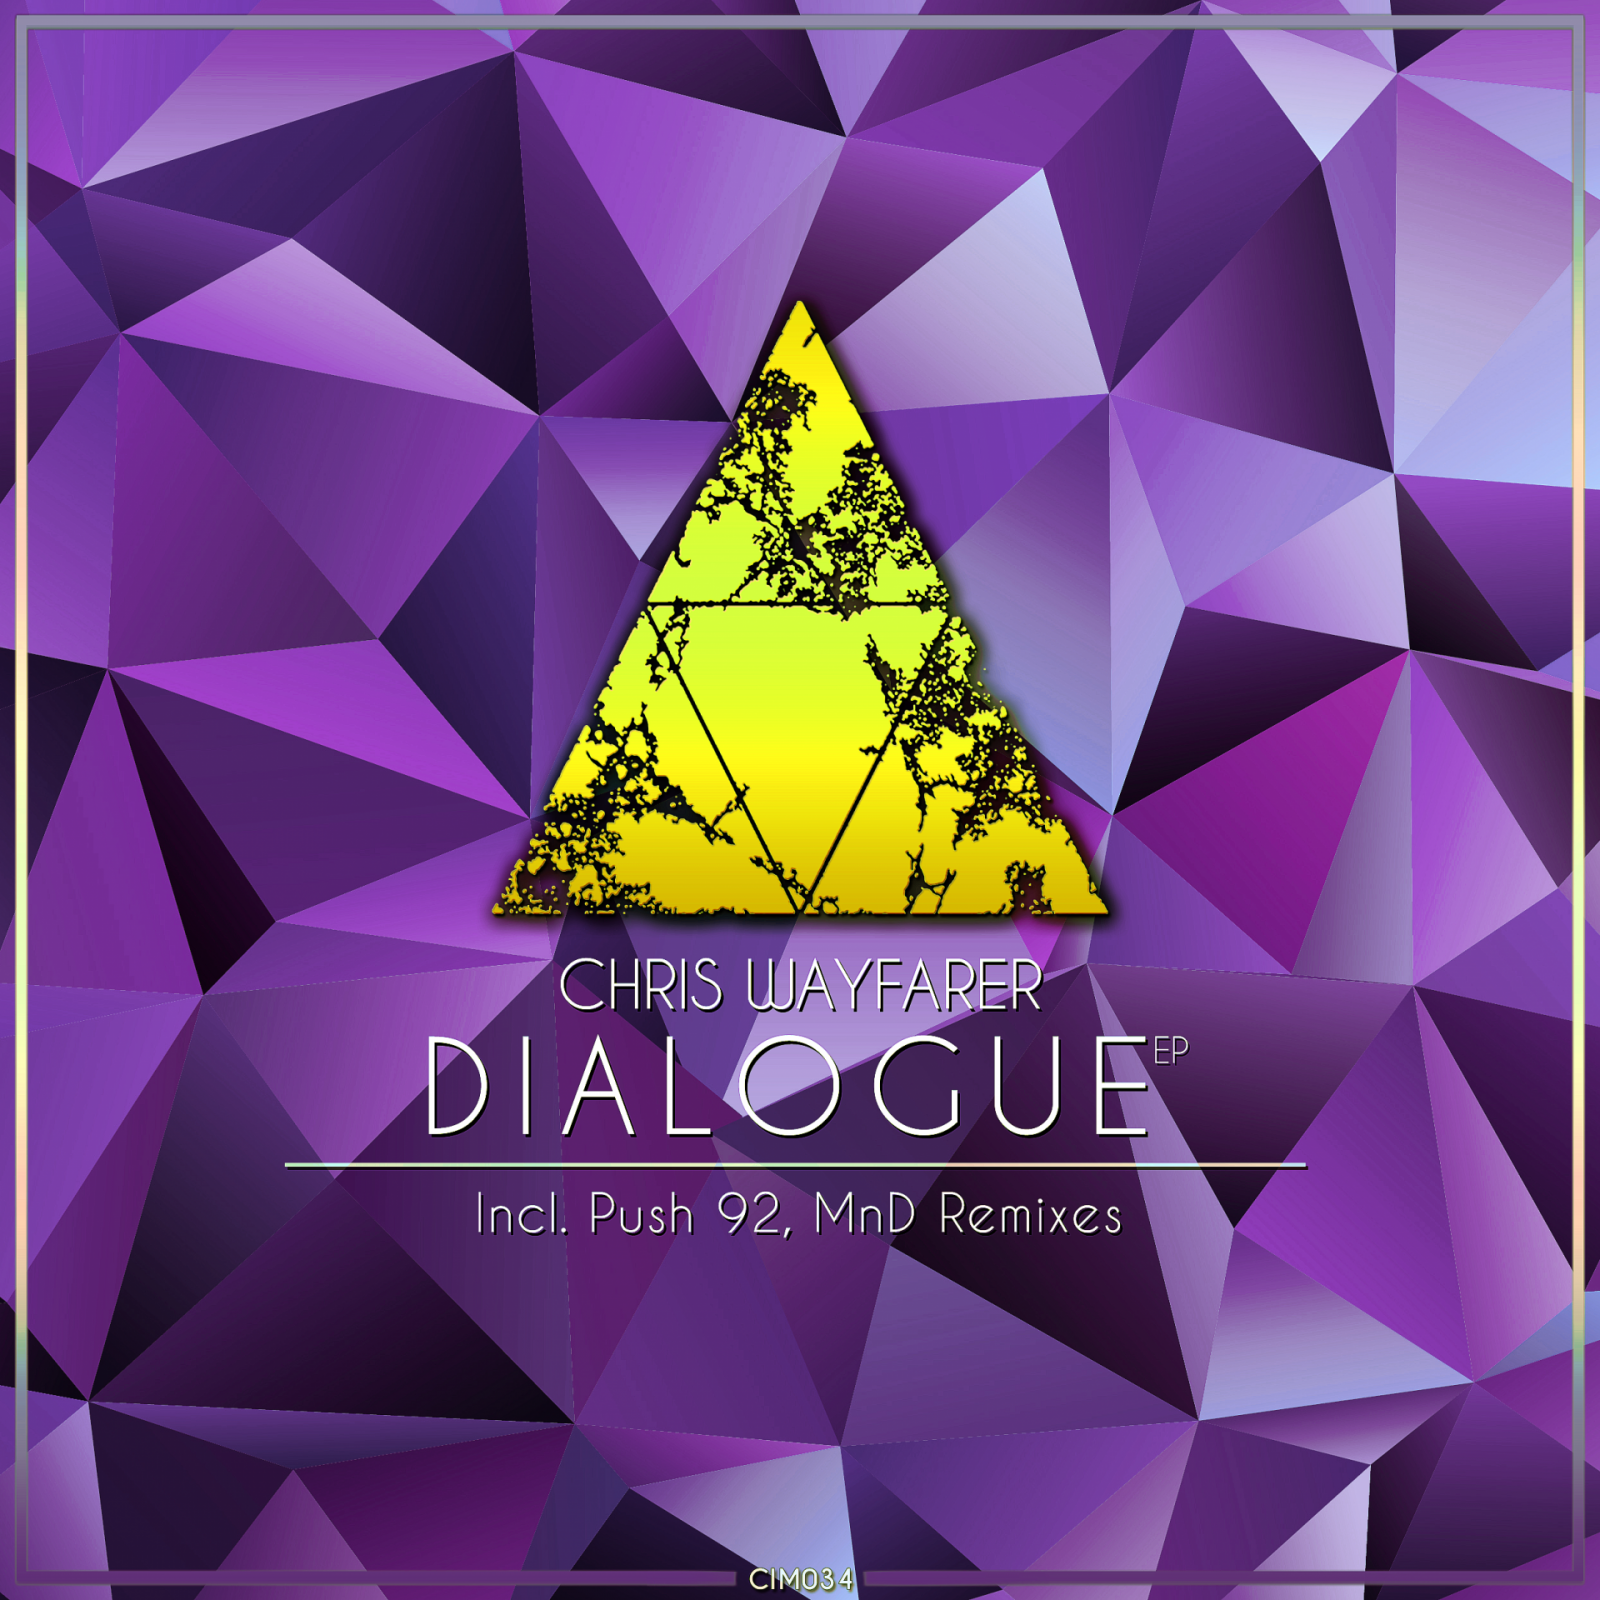 Chris Wayfarer - Dialogue EP